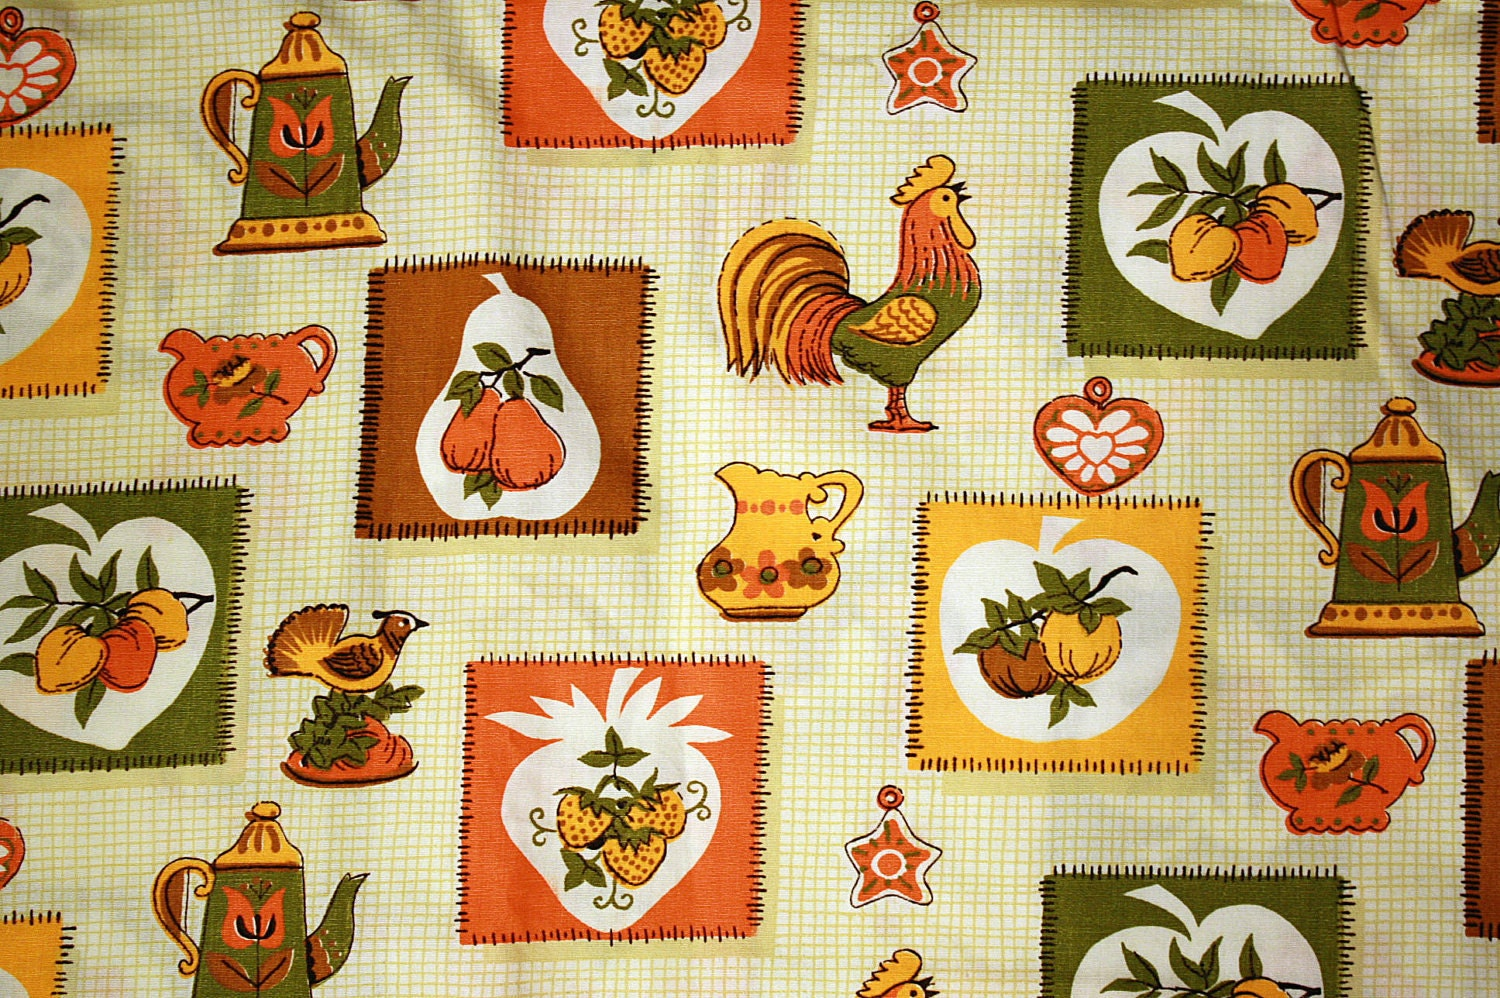 Cotton Fabric Yardage: Vintage 70s Kitchen Print Roosters